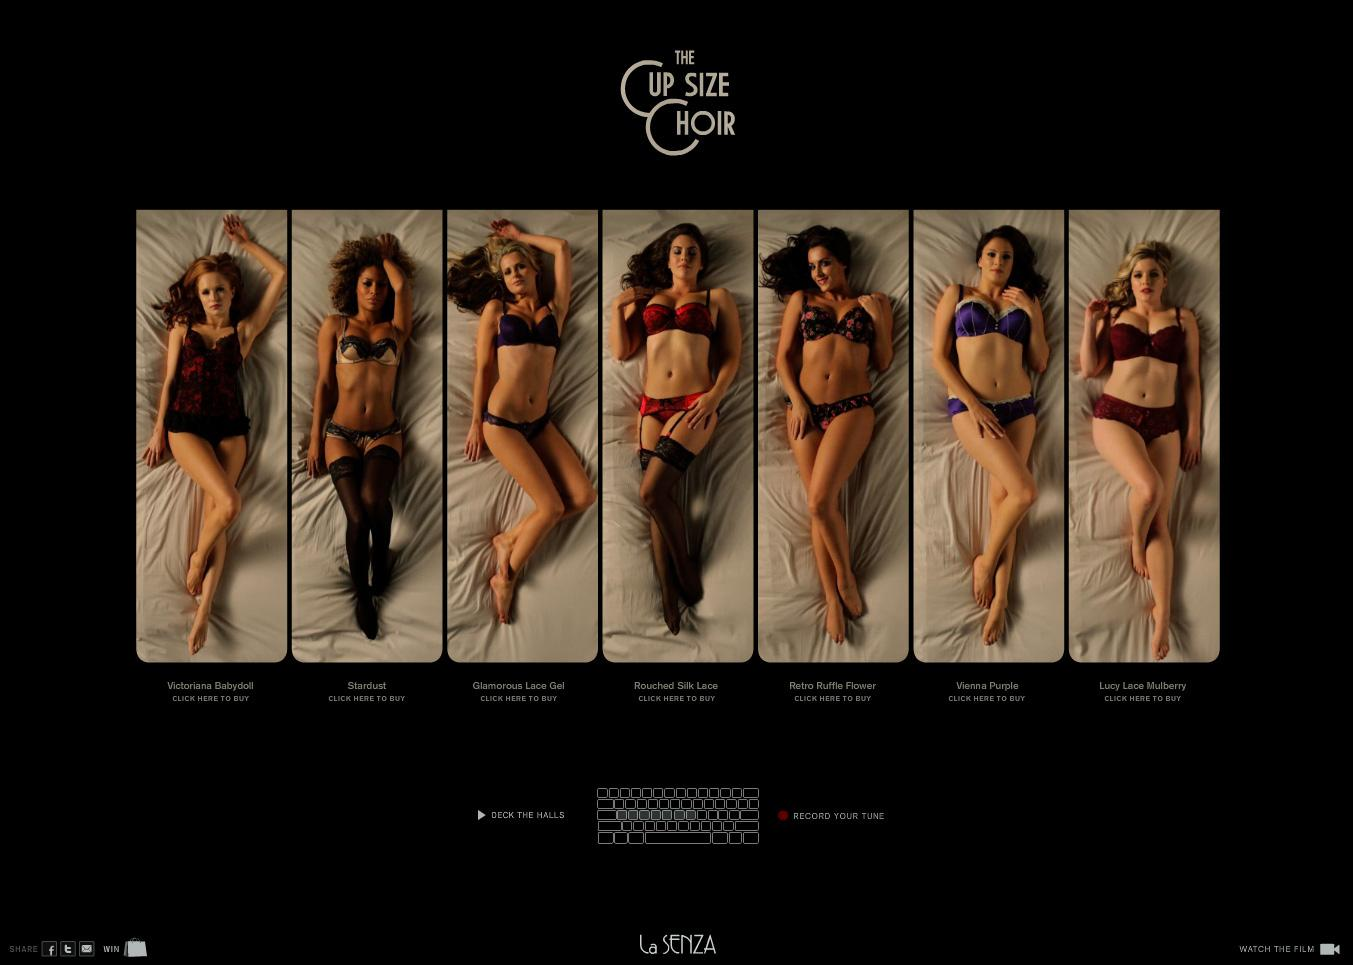 La Senza Digital Ad -  The Cup Size Choir